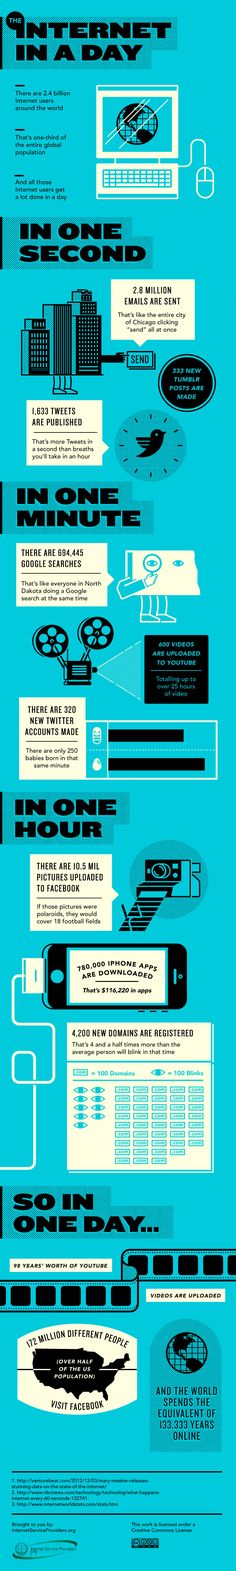 #Infographic: The #Internet In A Day